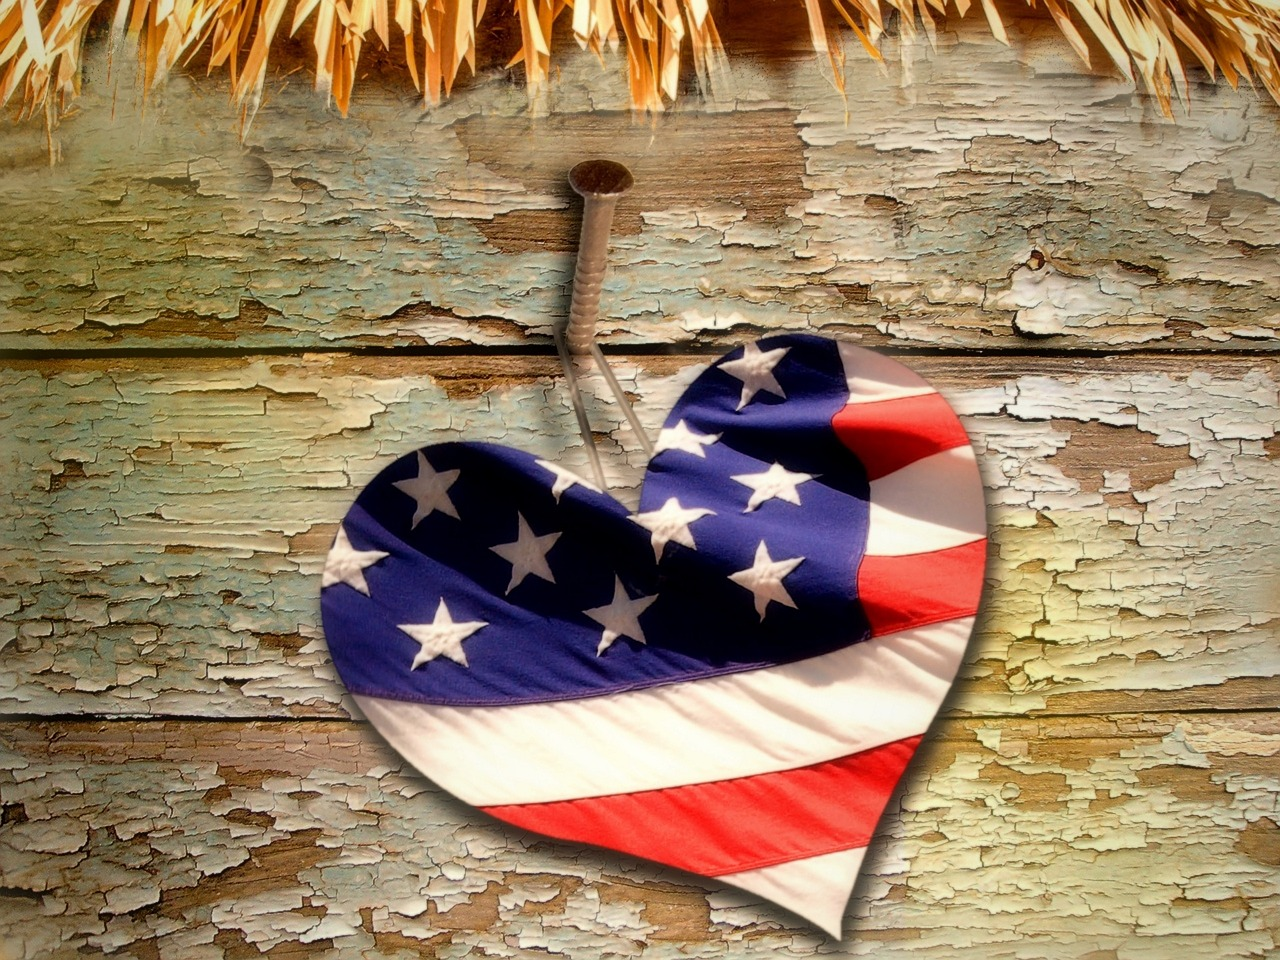 Red Voters: When hate from the left is loud, love must be louder. American flag heart with straw. Image by kalhh on Pixabay.